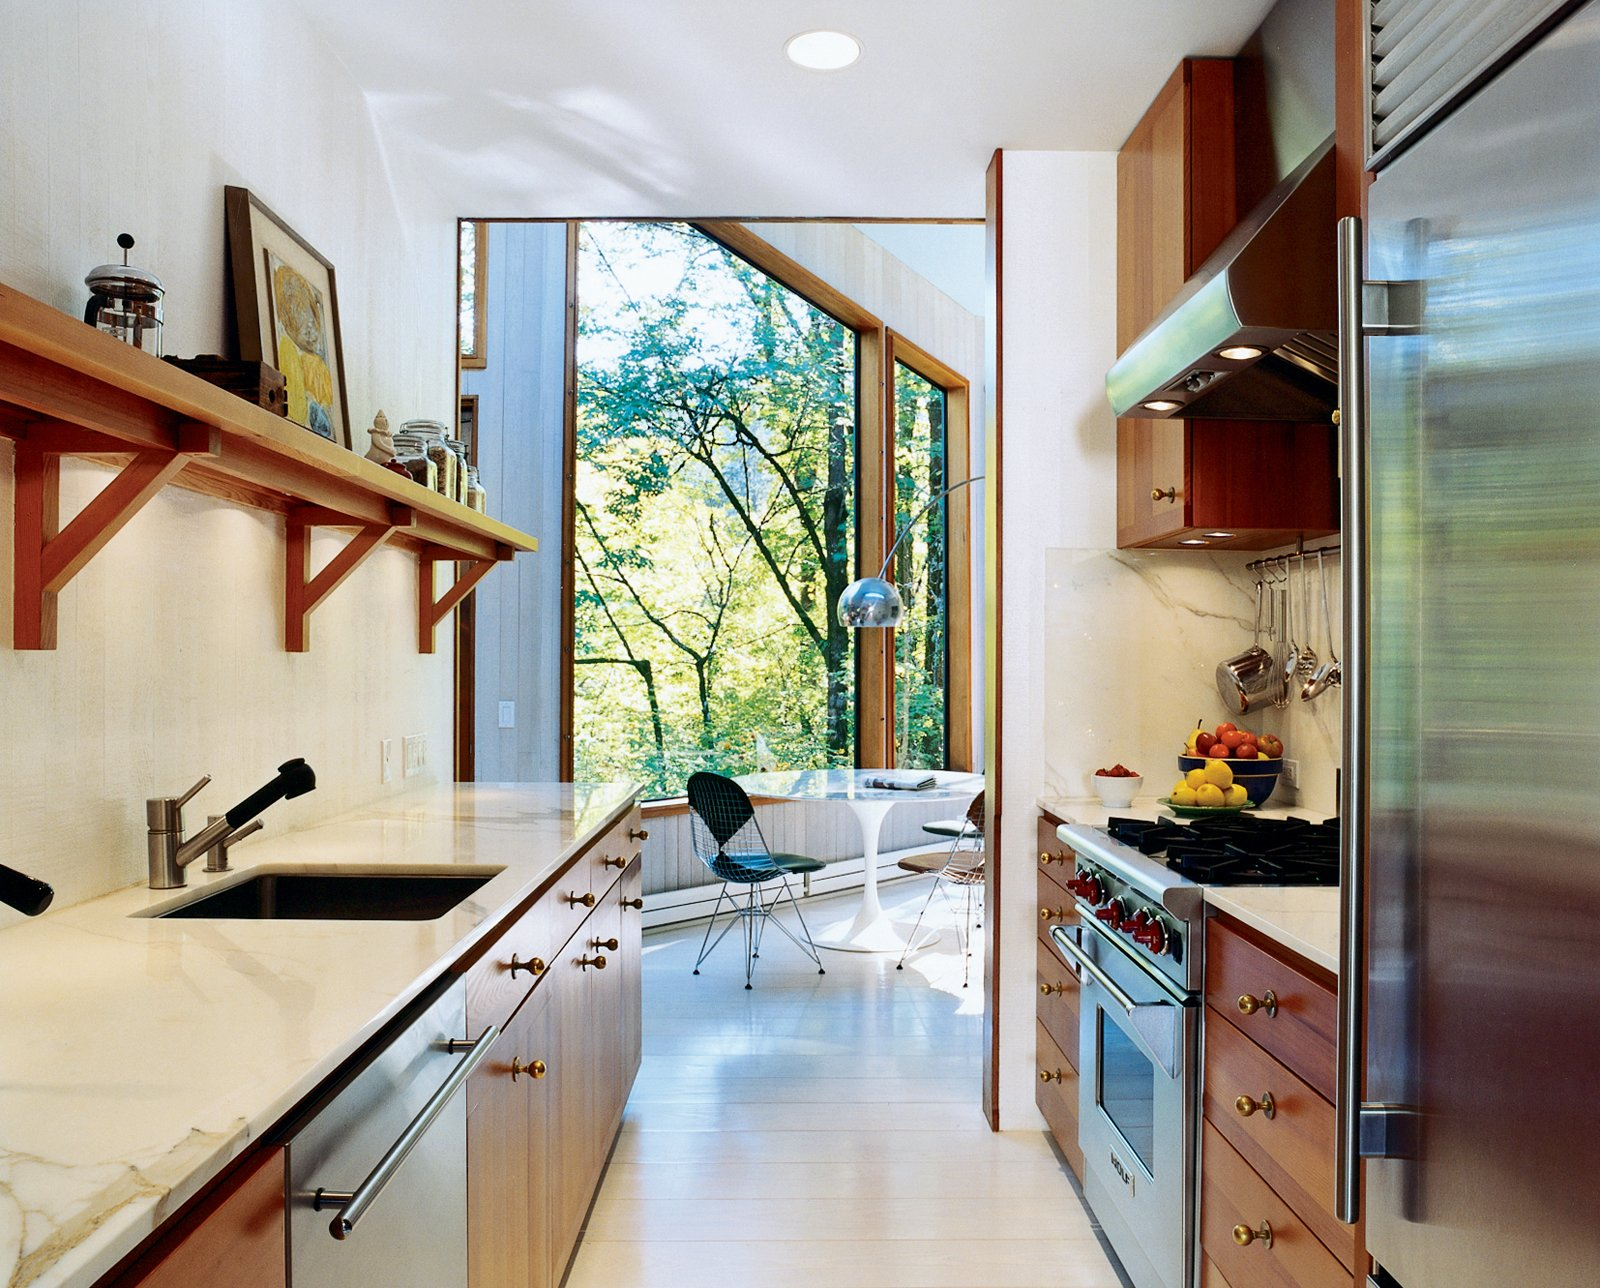 Kitchen, Marble Counter, Refrigerator, Range, and Marble Backsplashe To brighten the kitchen, which was once the darkest room, Watson and Tschopp decided on a glossy white finish, painted directly on the same rough-cut cedar paneling used throughout the house. This maintains the consistency of materials and texture, while reflecting light and enhancing the natural illumination. Stainless steel appliances and vintage bronze hardware add luster. Super White semigloss (walls) and Old Pick Up Blue (ceilings) are by Benjamin Moore.  Photo 3 of 6 in The Pace of Portland